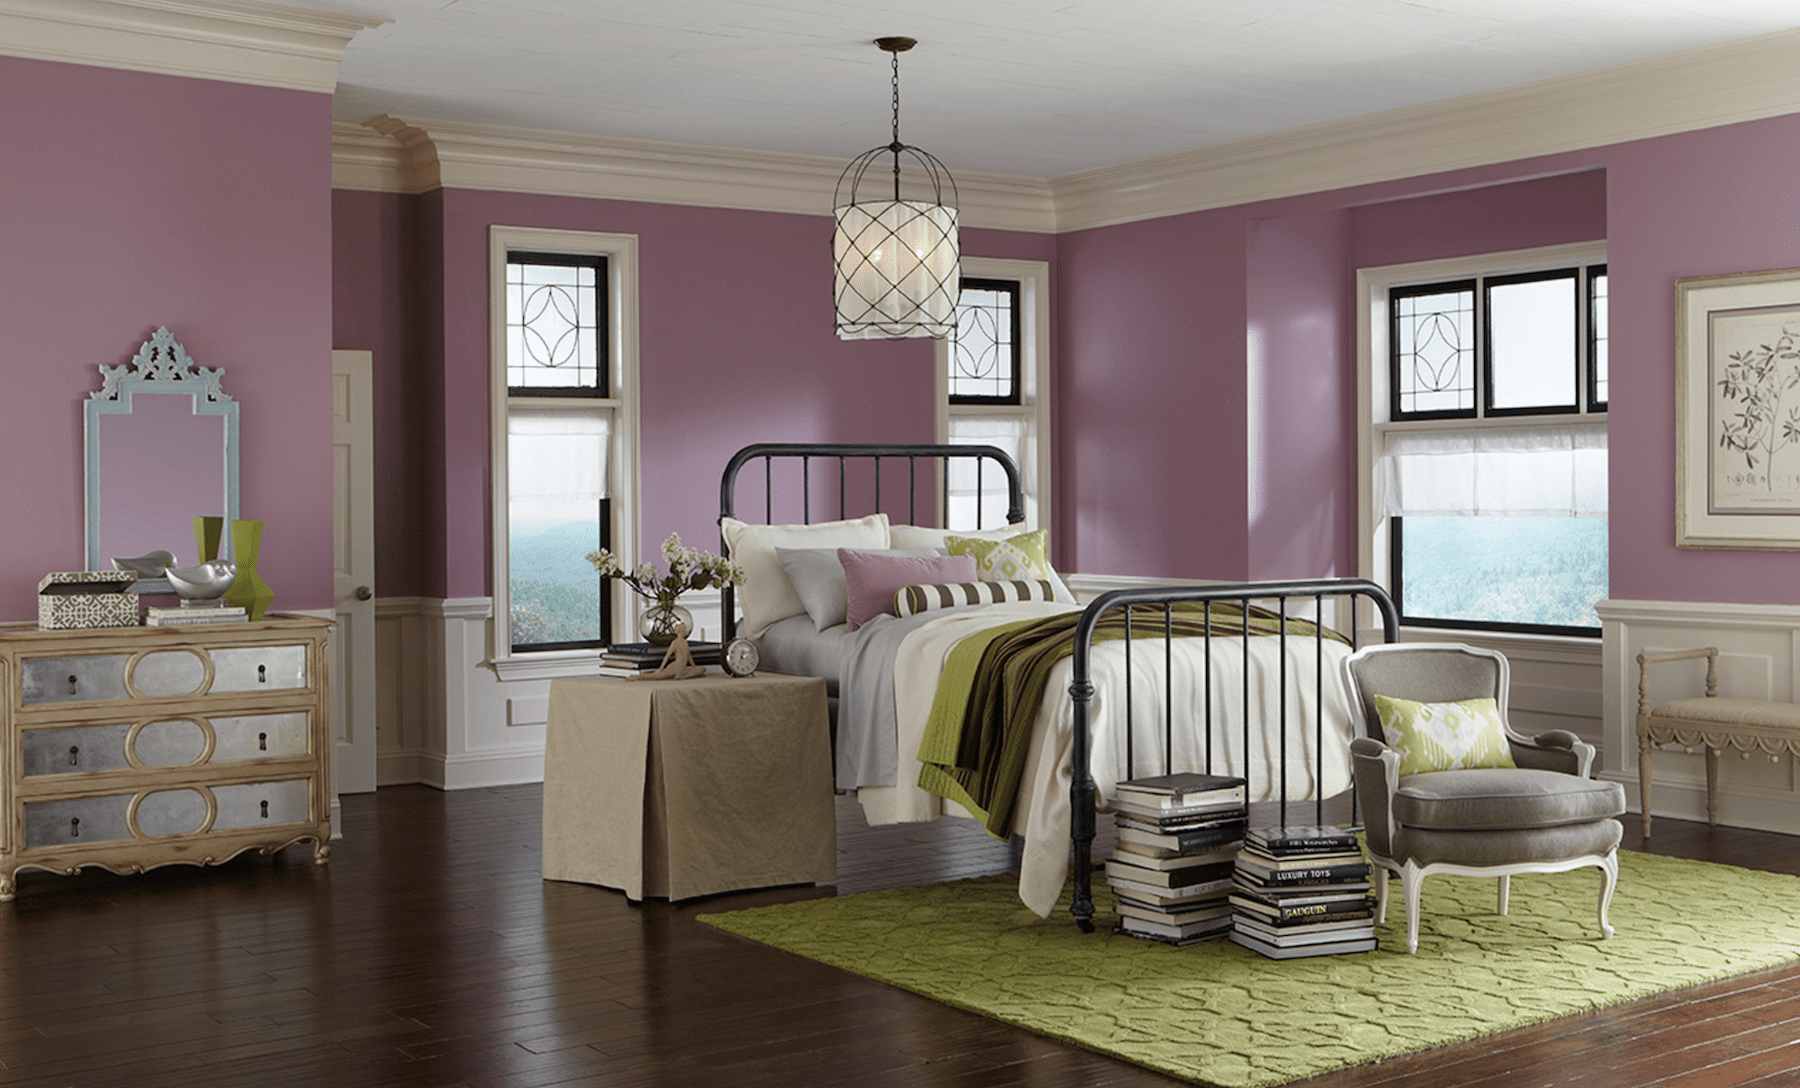 Sherwin Williams Auto Paint >> HGTV Home by Sherwin-Williams, Softer Side Palette